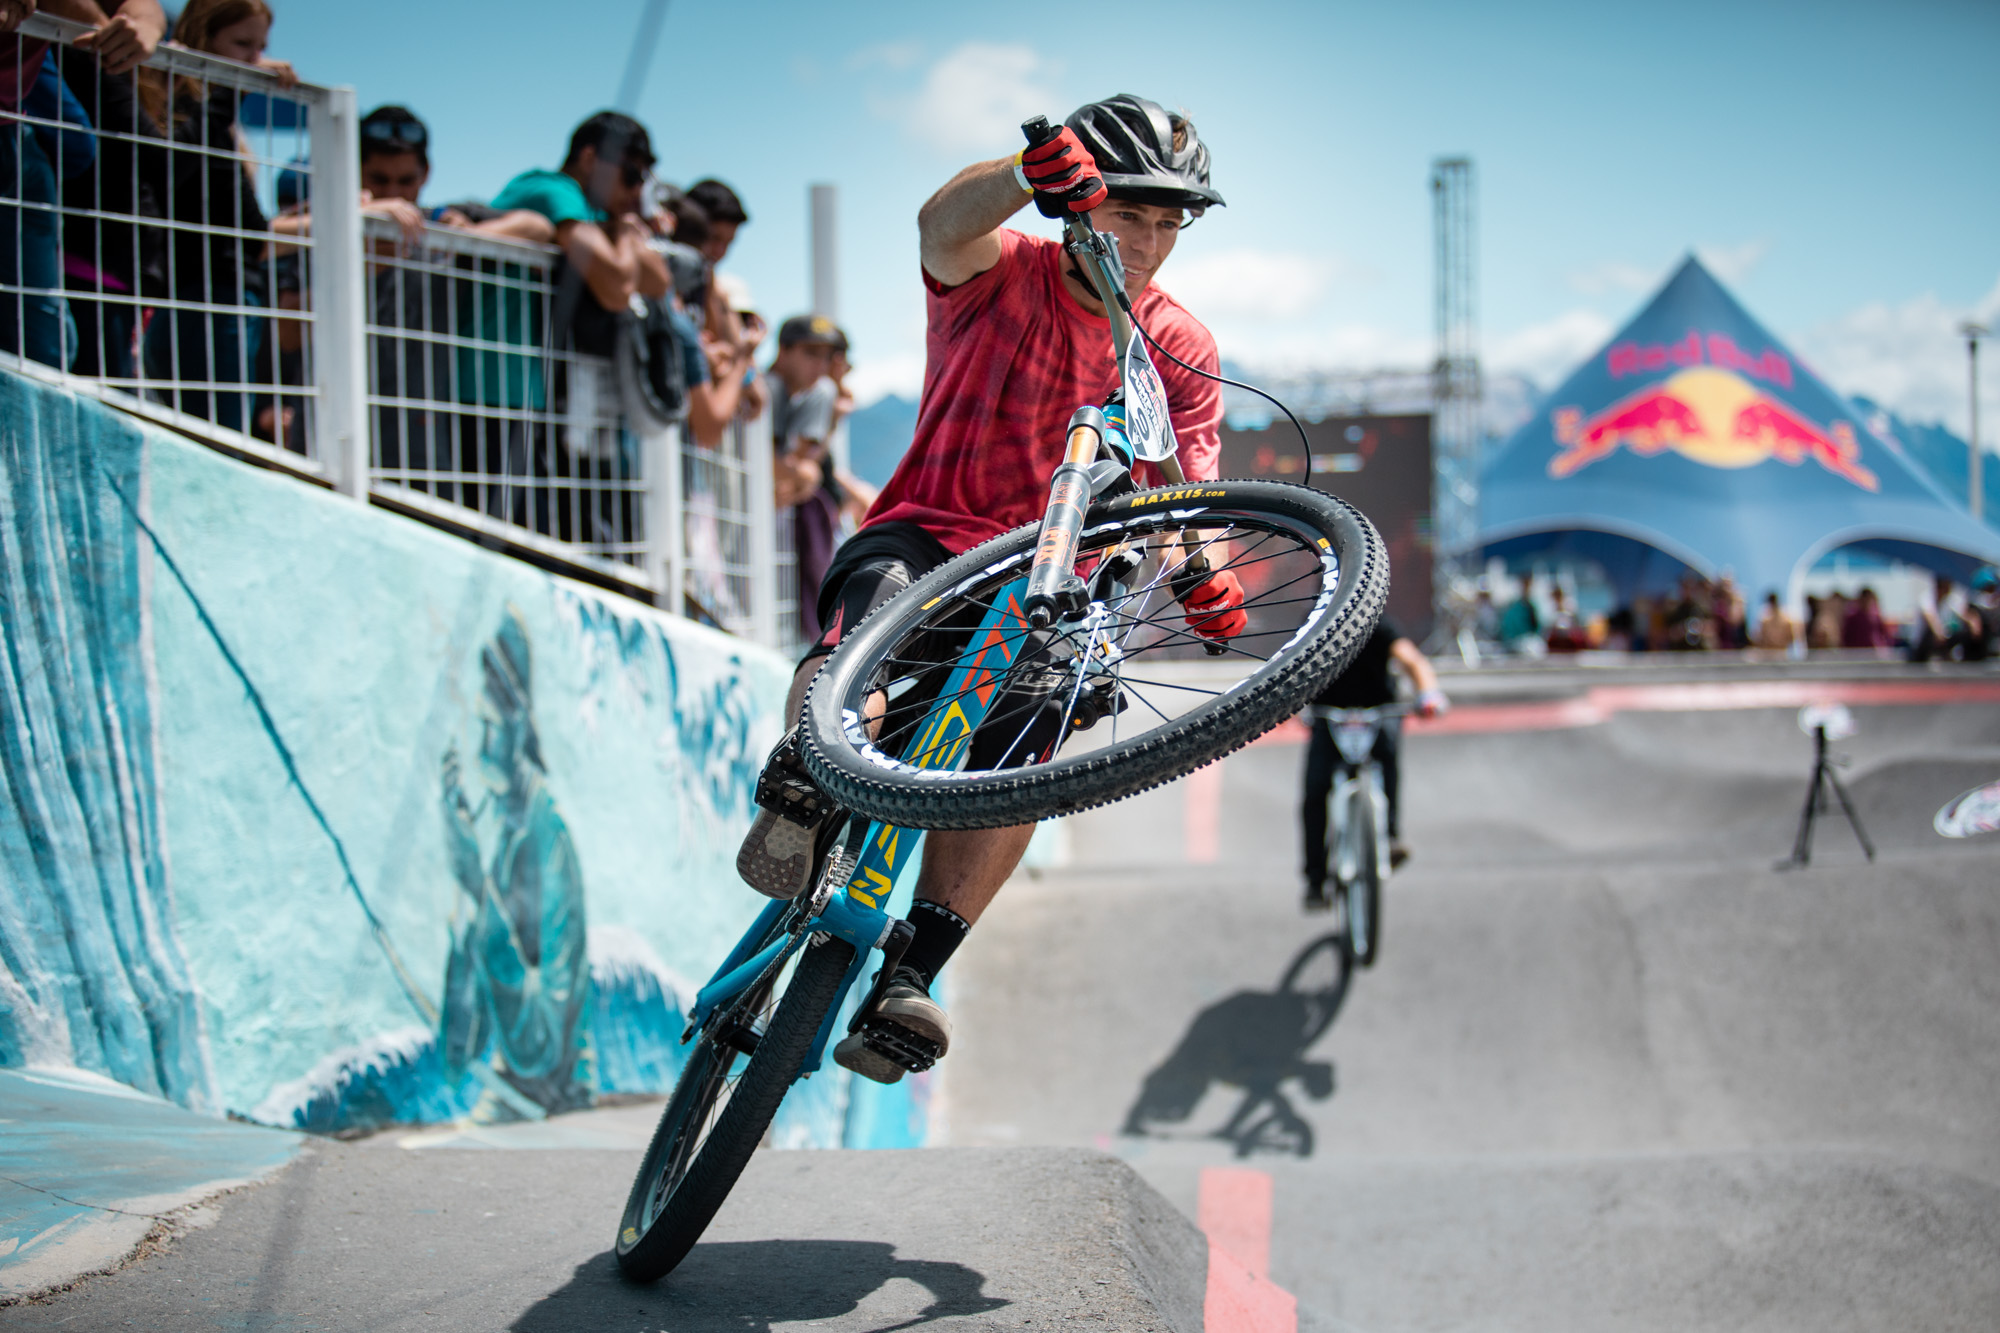 VIDEO: All the race day action from Bariloche